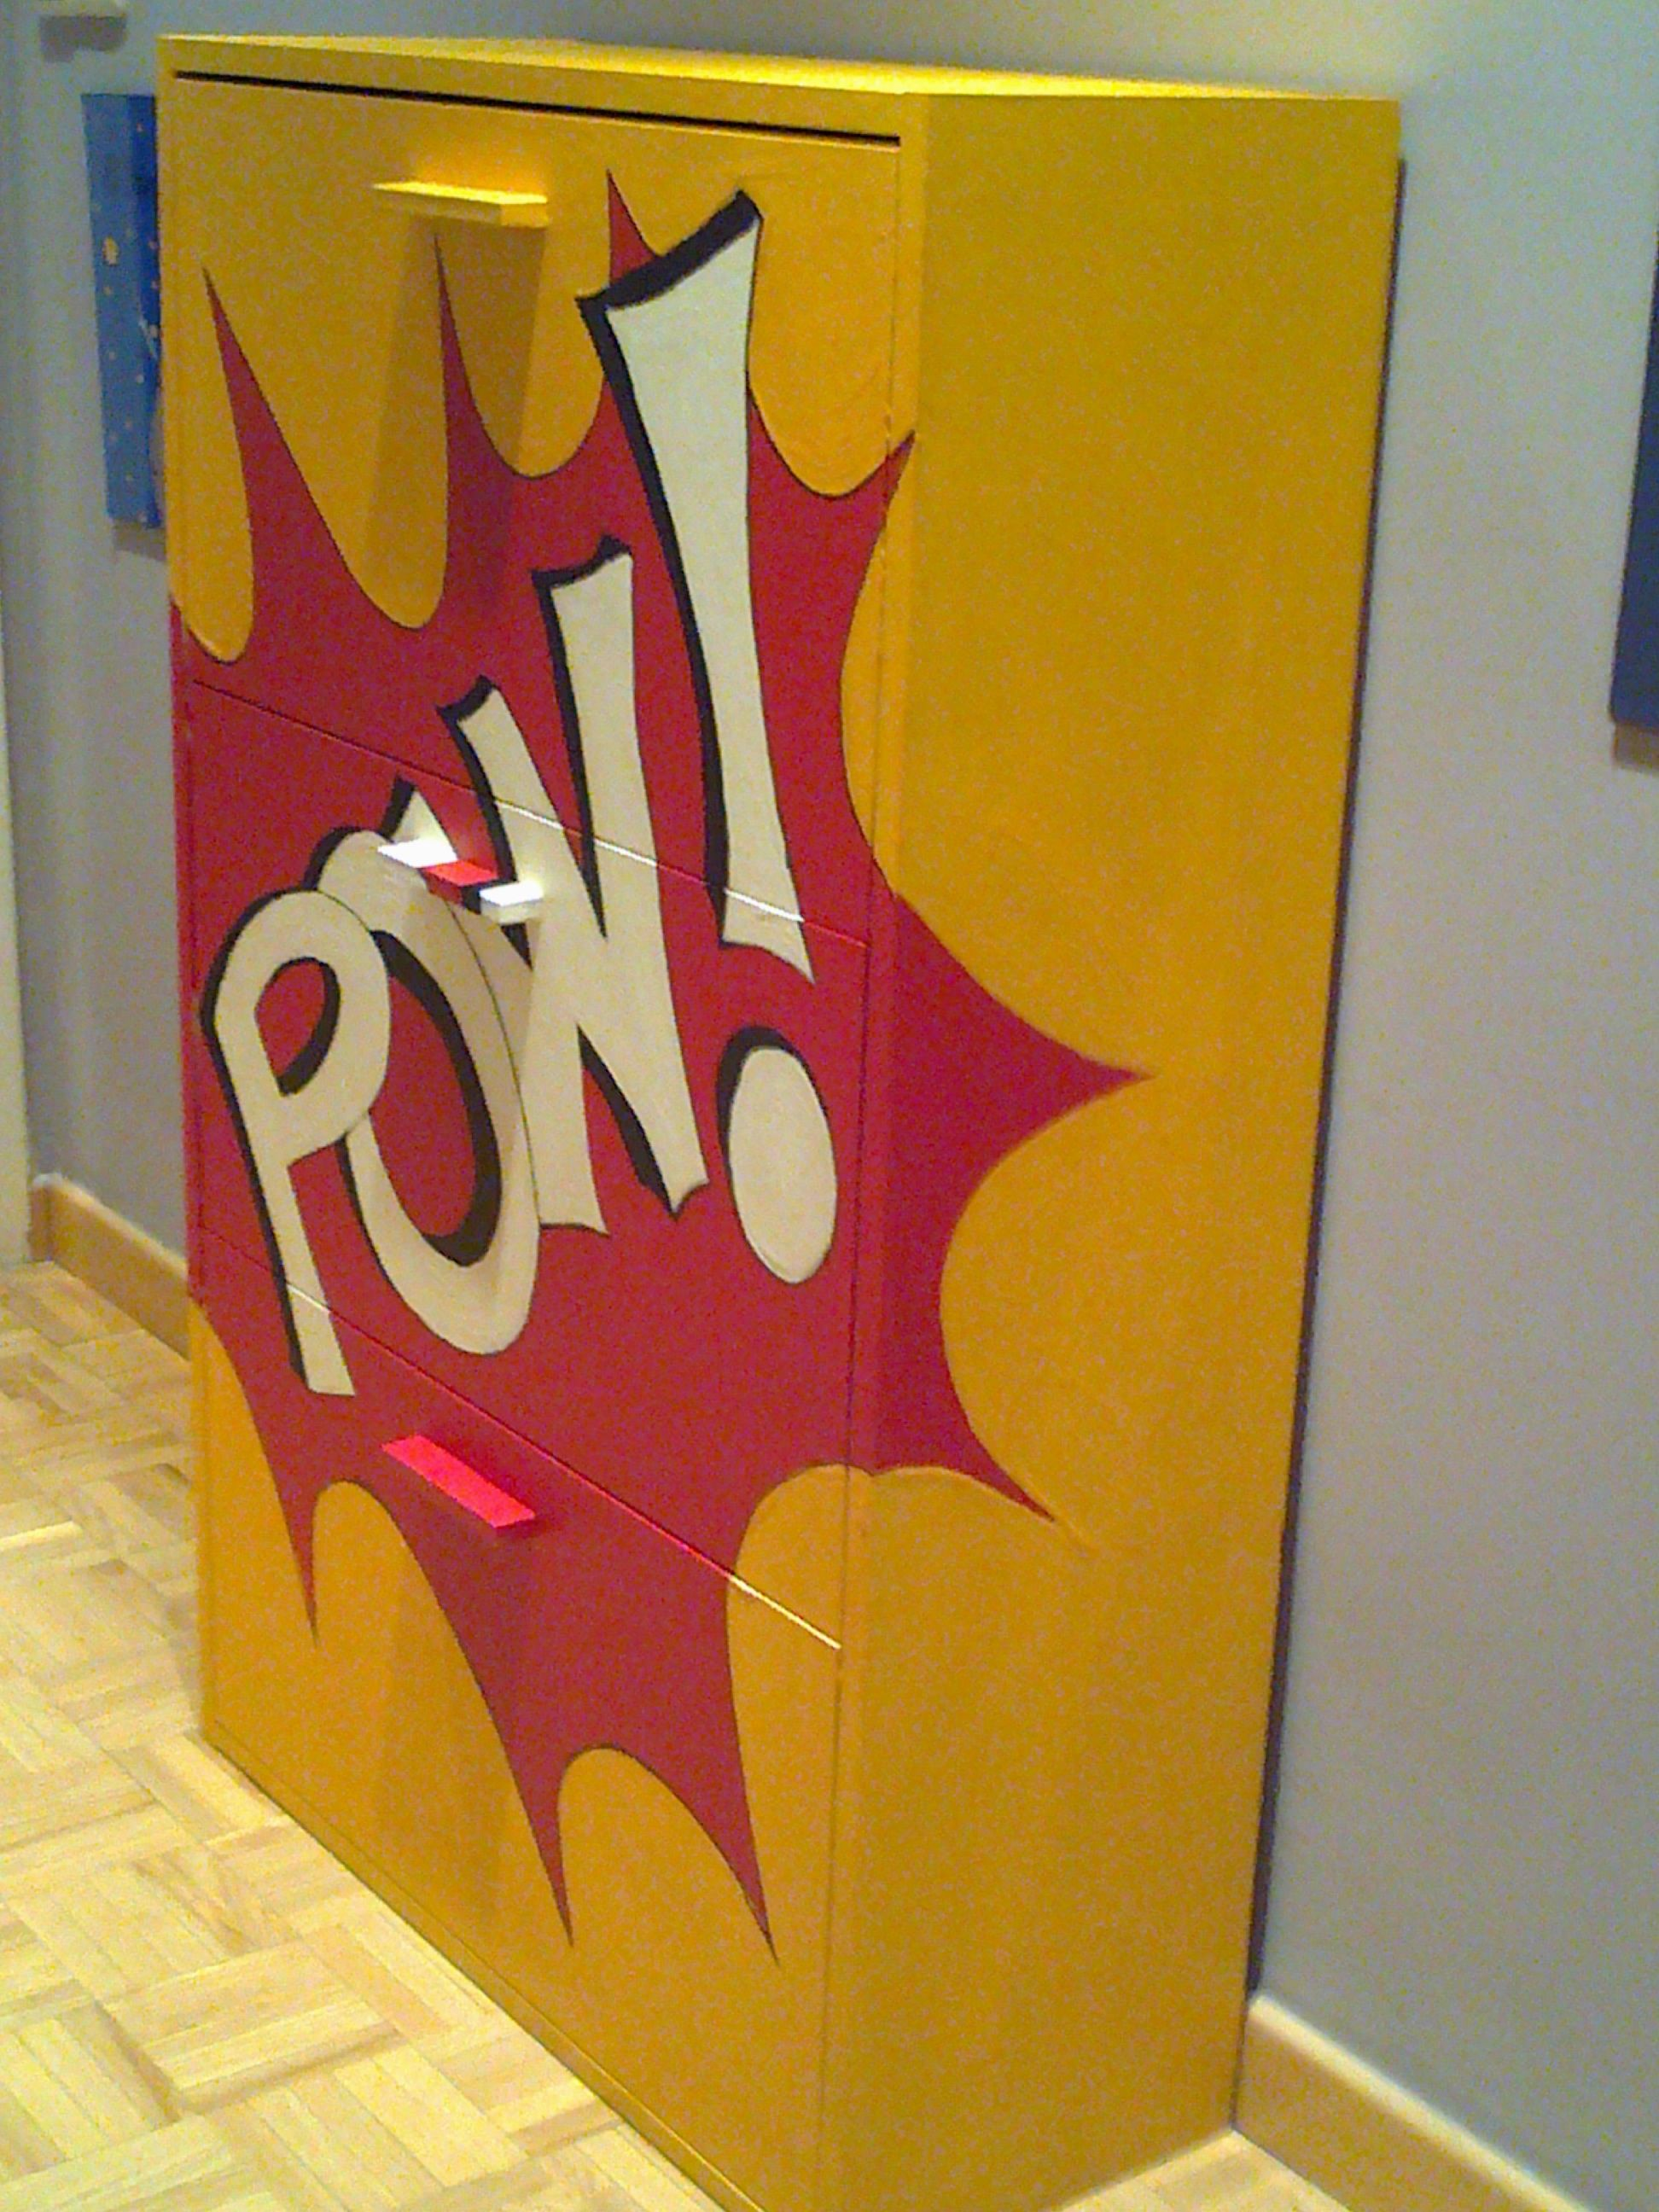 Muebles Pop Art Pin De Patxi Yague Egaña En Pop Art Art Furniture Pop